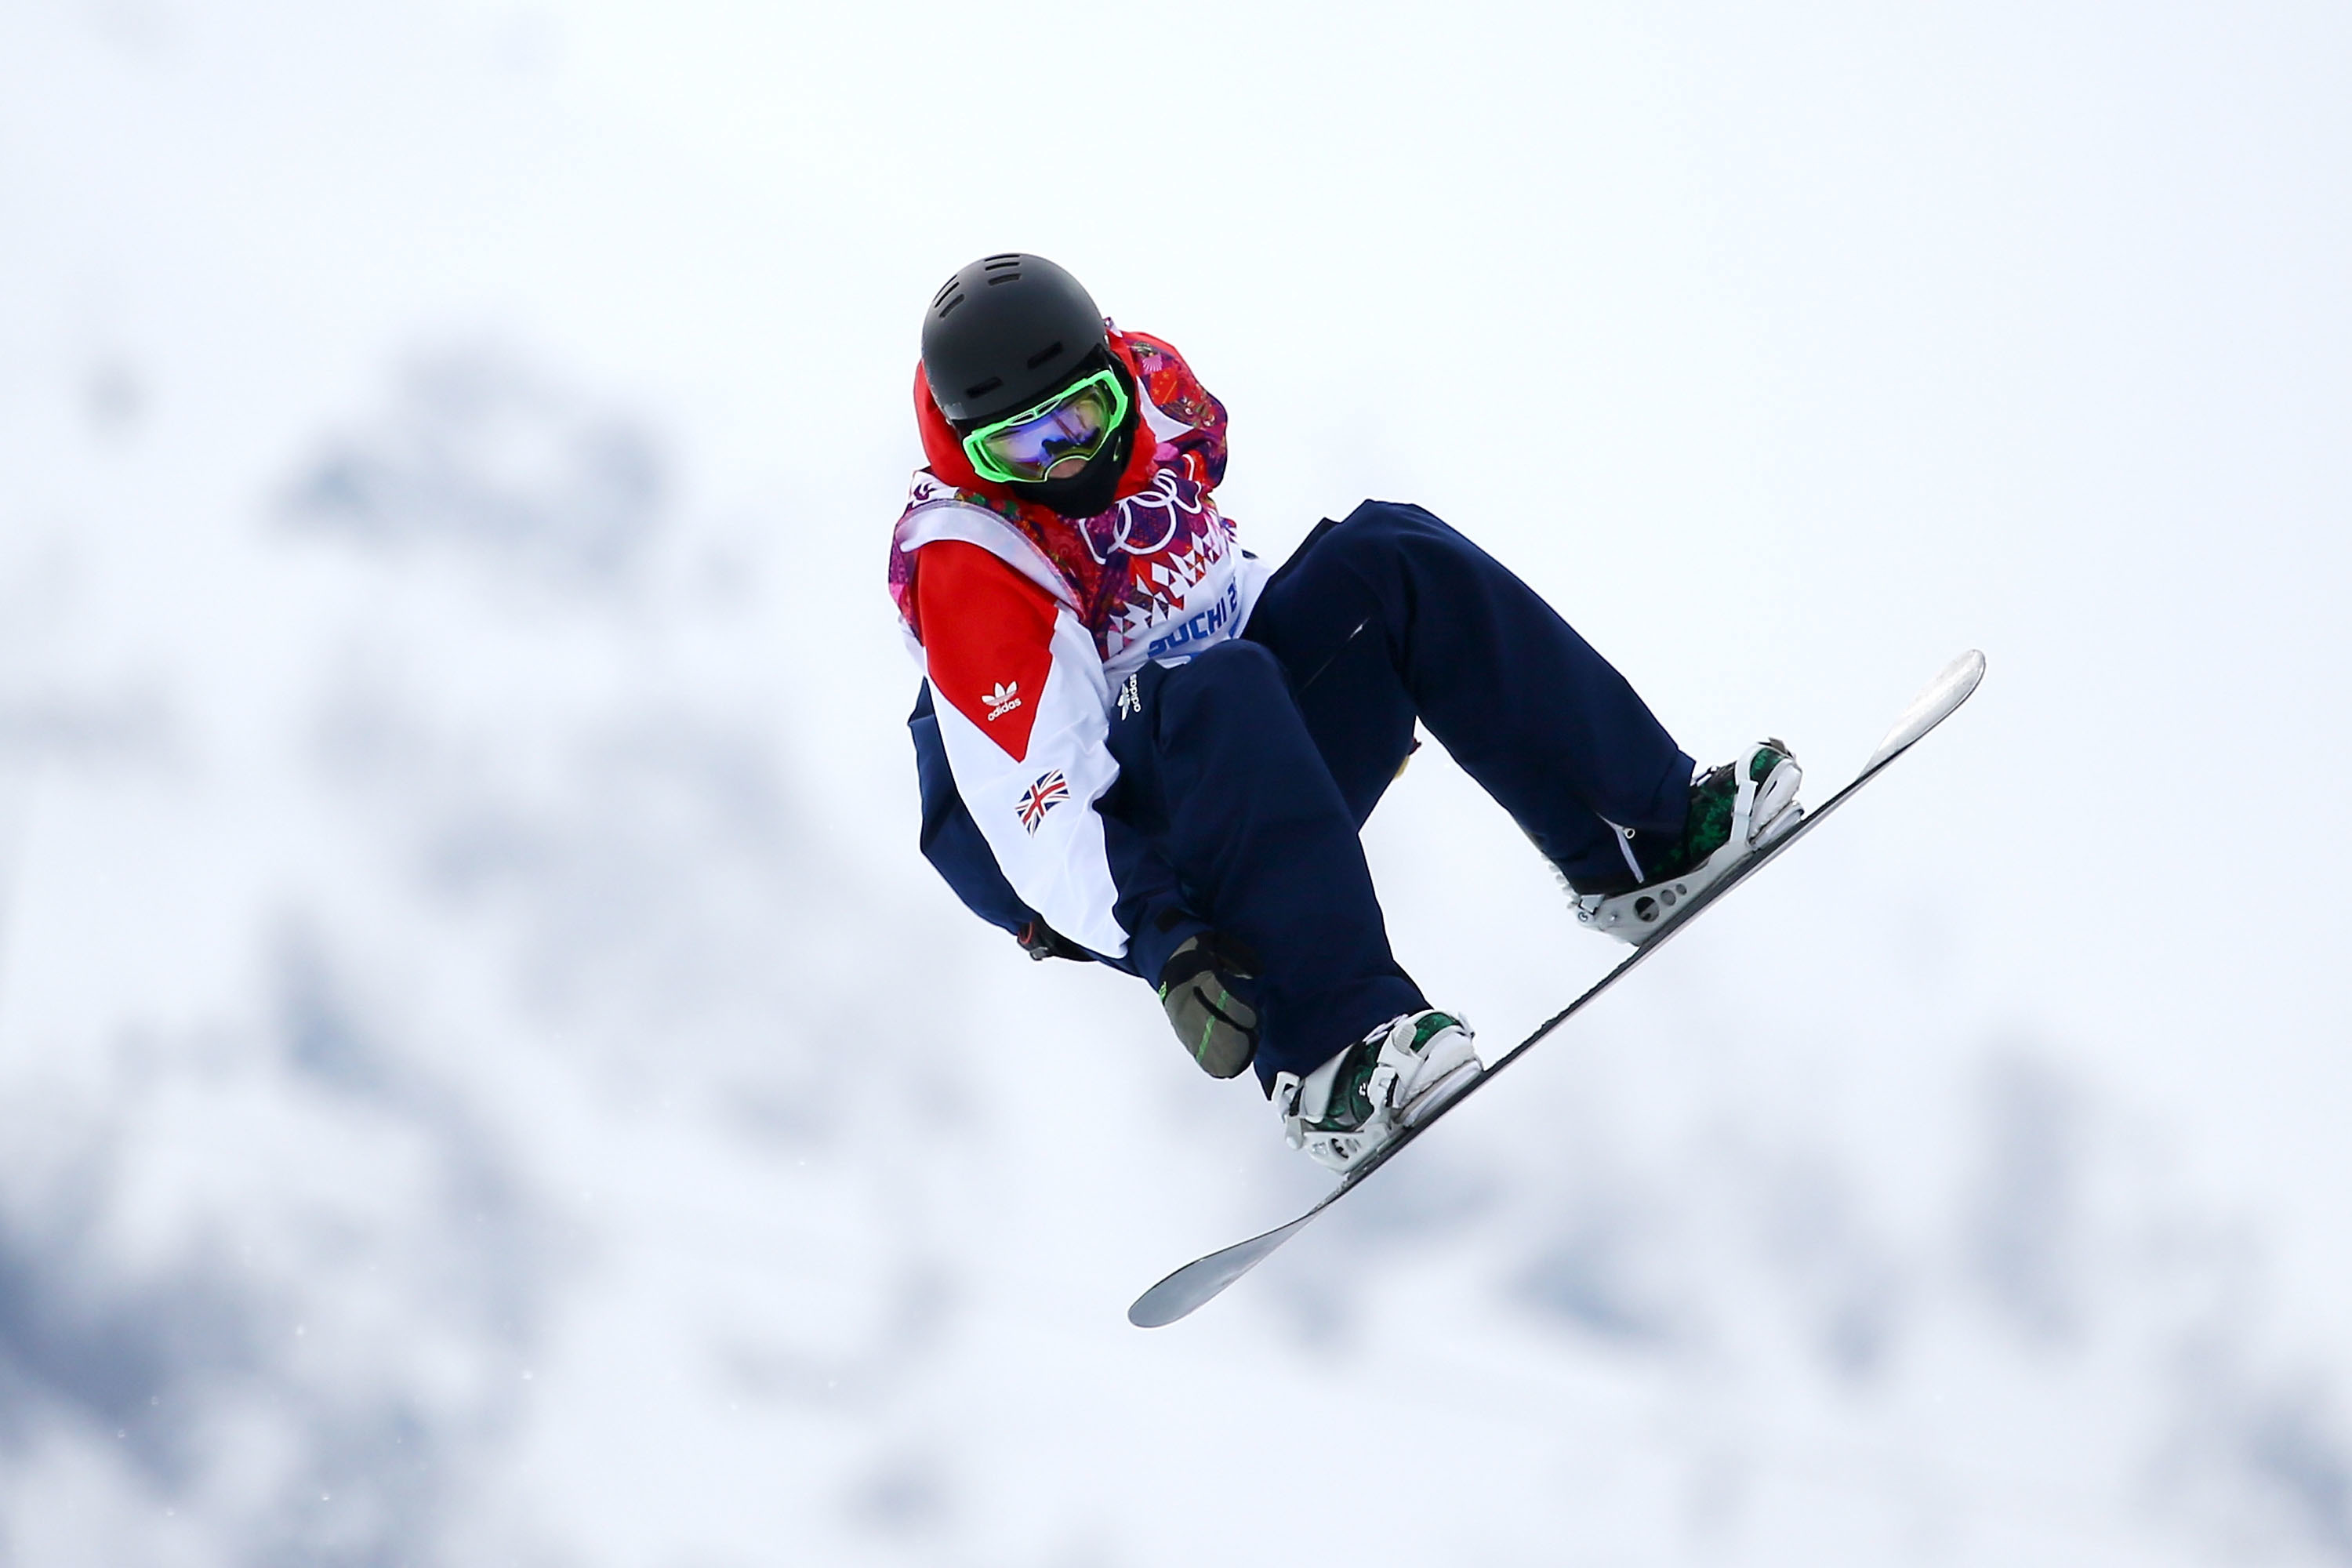 Ben Kilner of Great Britain competes in the Snowboard Men's Halfpipe Qualification Heats on day four of the Sochi 2014 Winter Olympics.